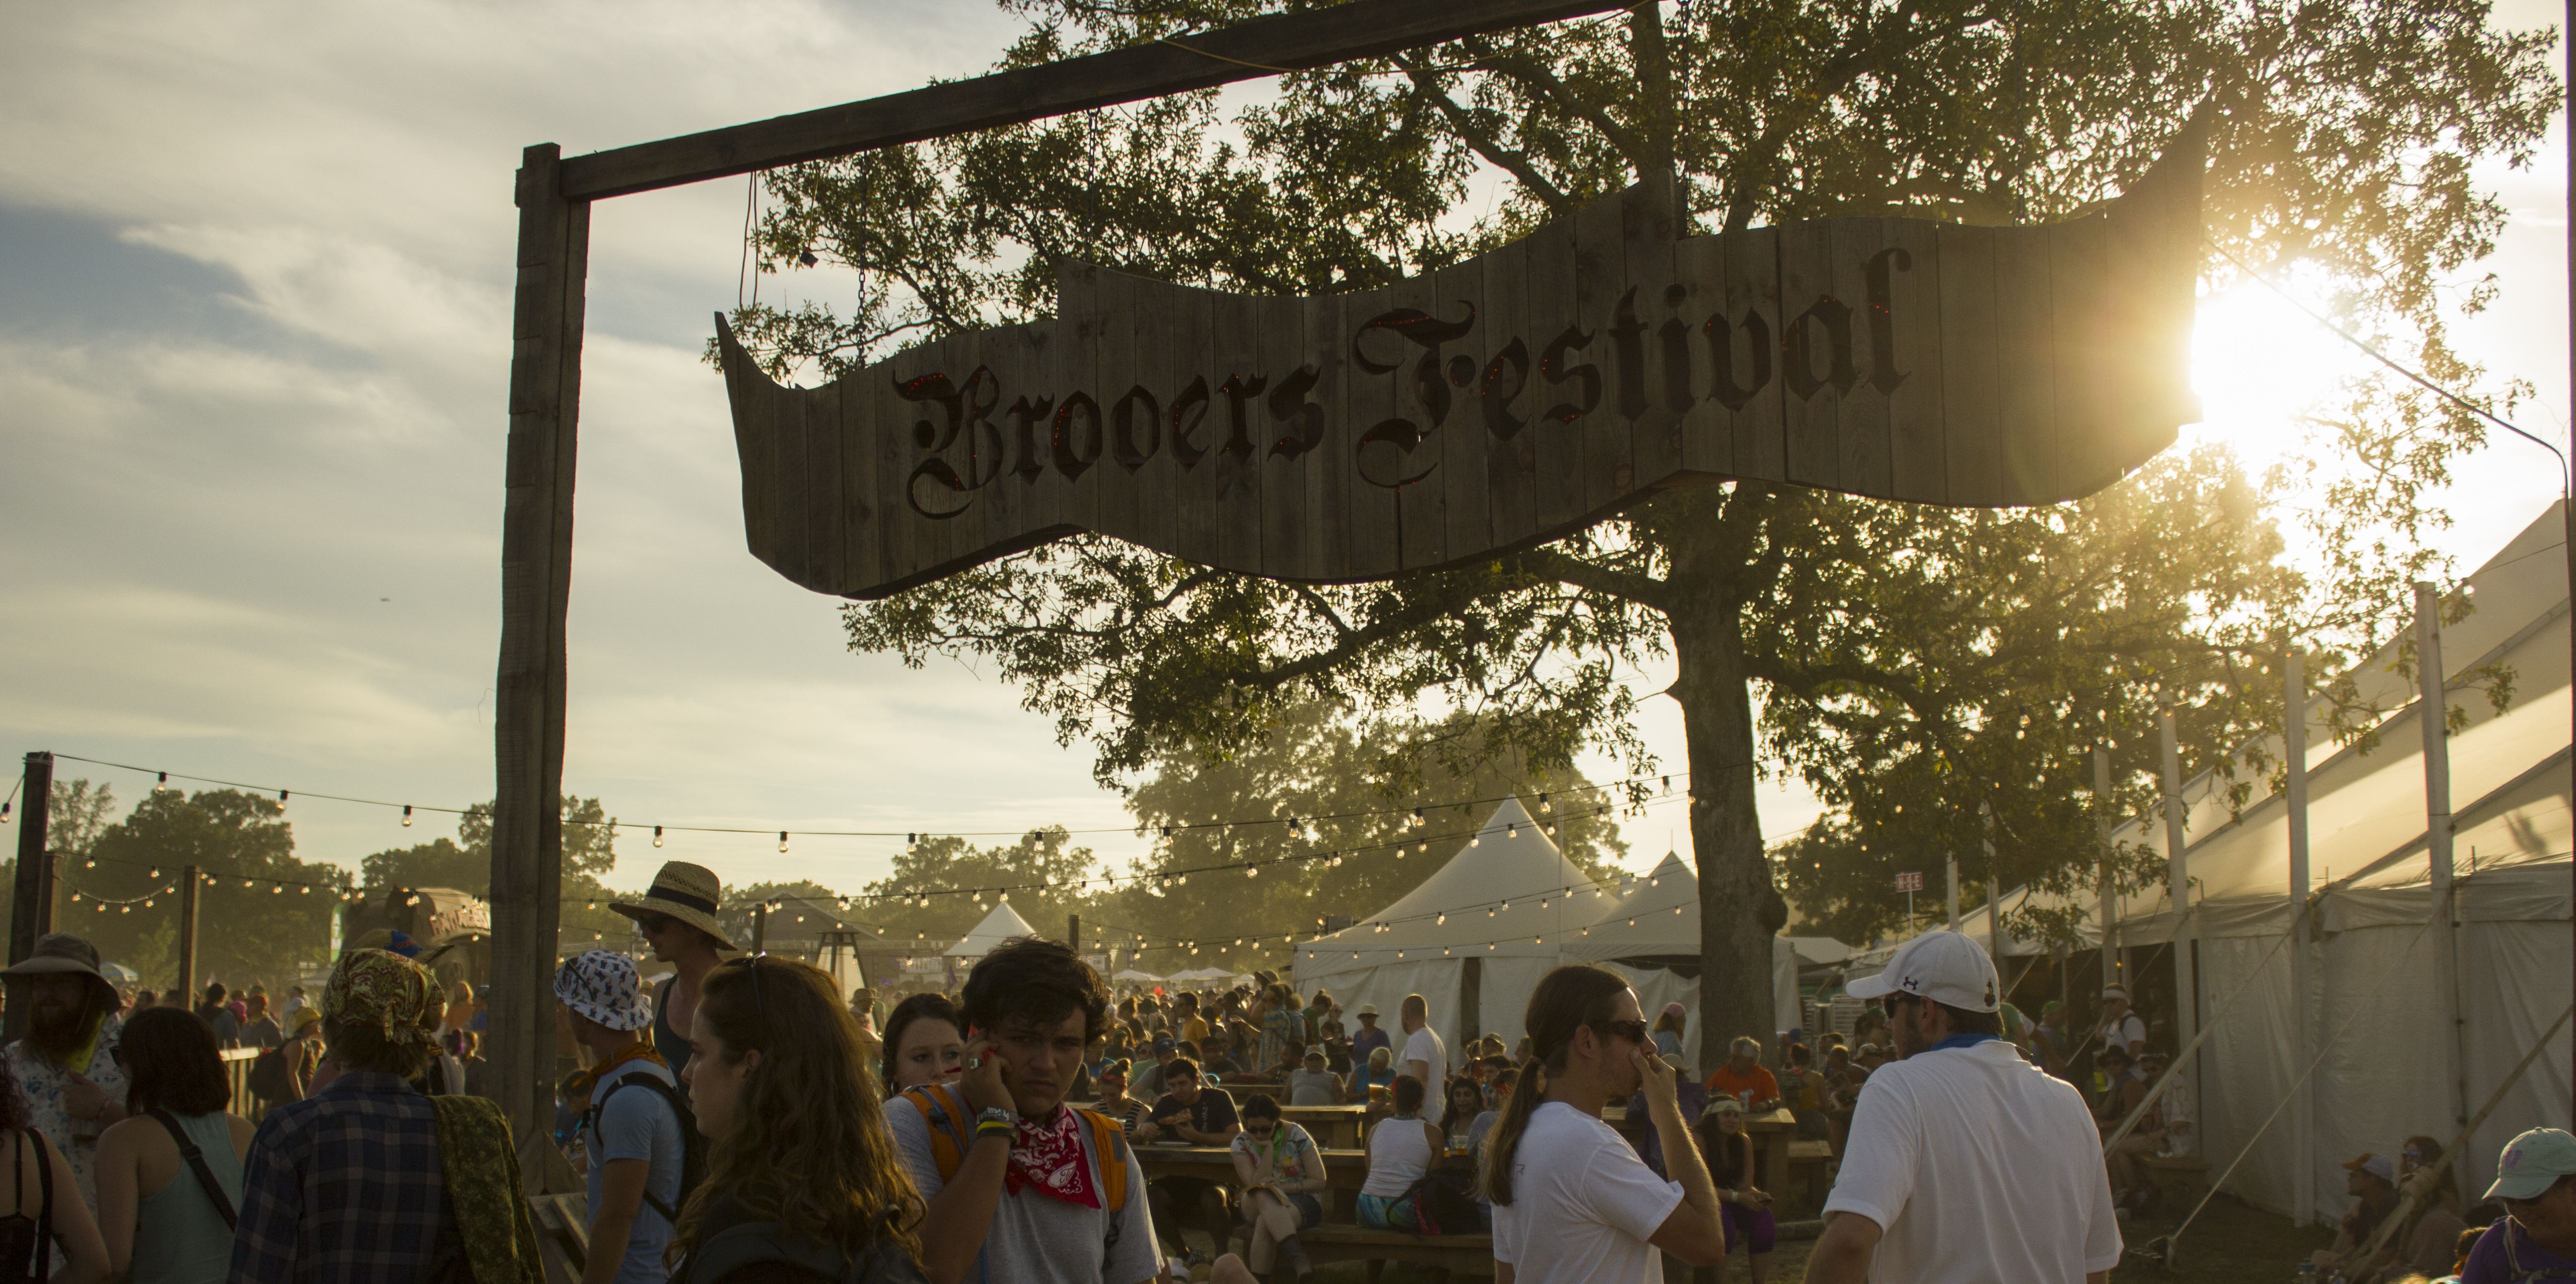 Beer tent at Bonnaroo 2015. Photo by: Matthew McGuire